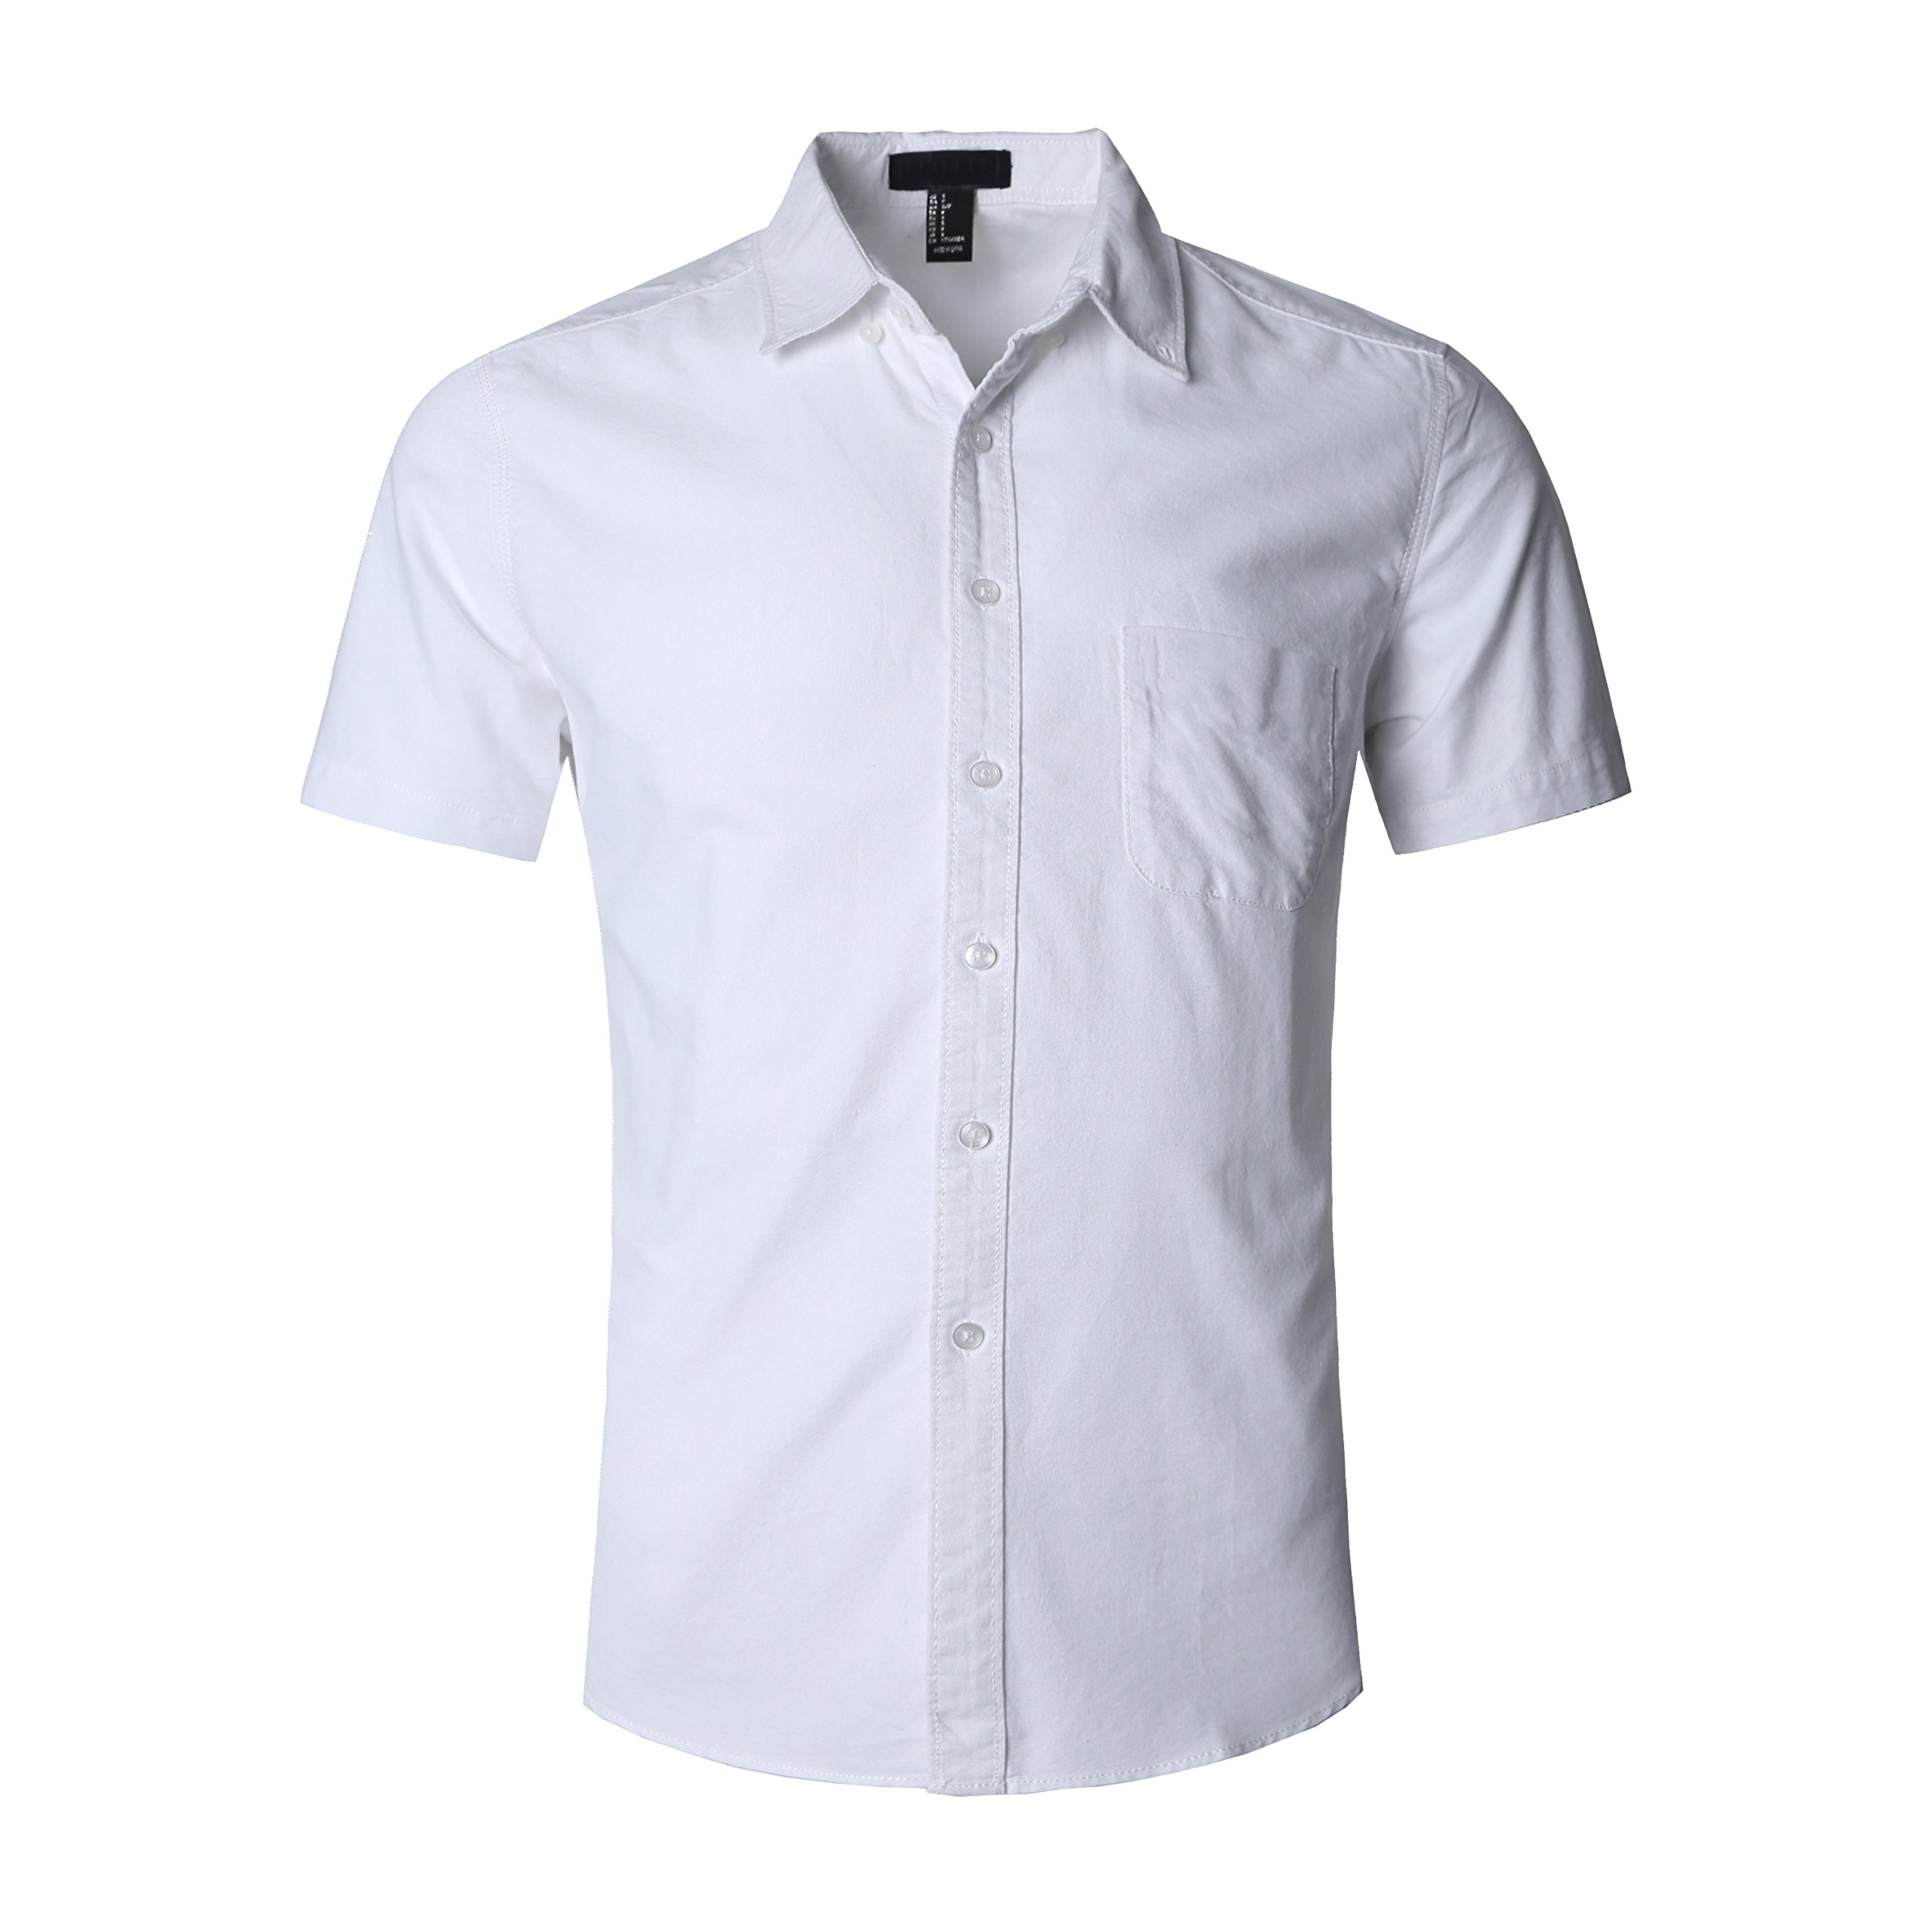 NUTEXROL Men's Short Sleeve Cotton Solid Fitted Button Down Oxford Shirts White L